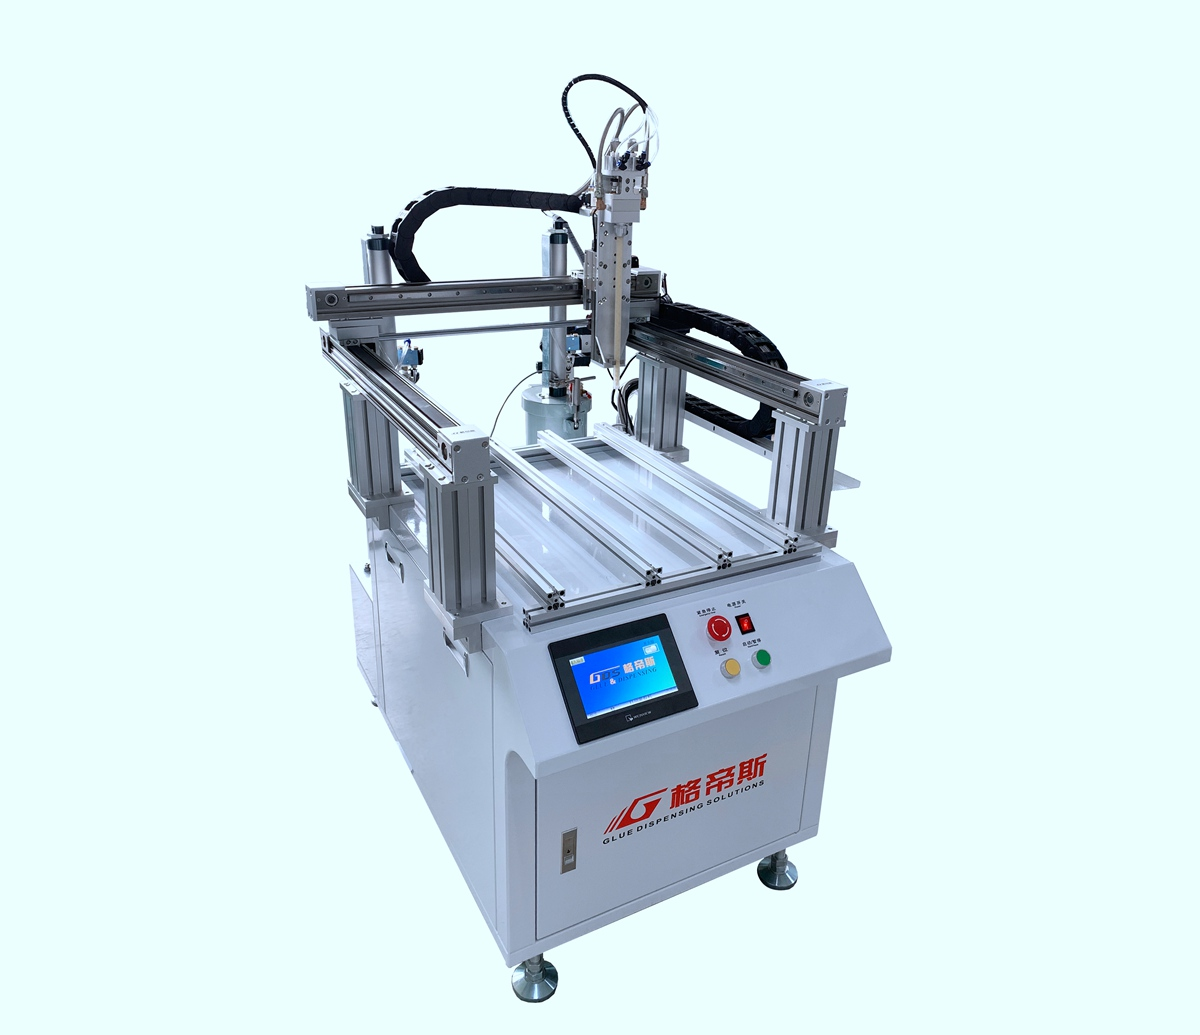 MG-2600 Full Automatic AB Glue Mixing & Dispensing Machine